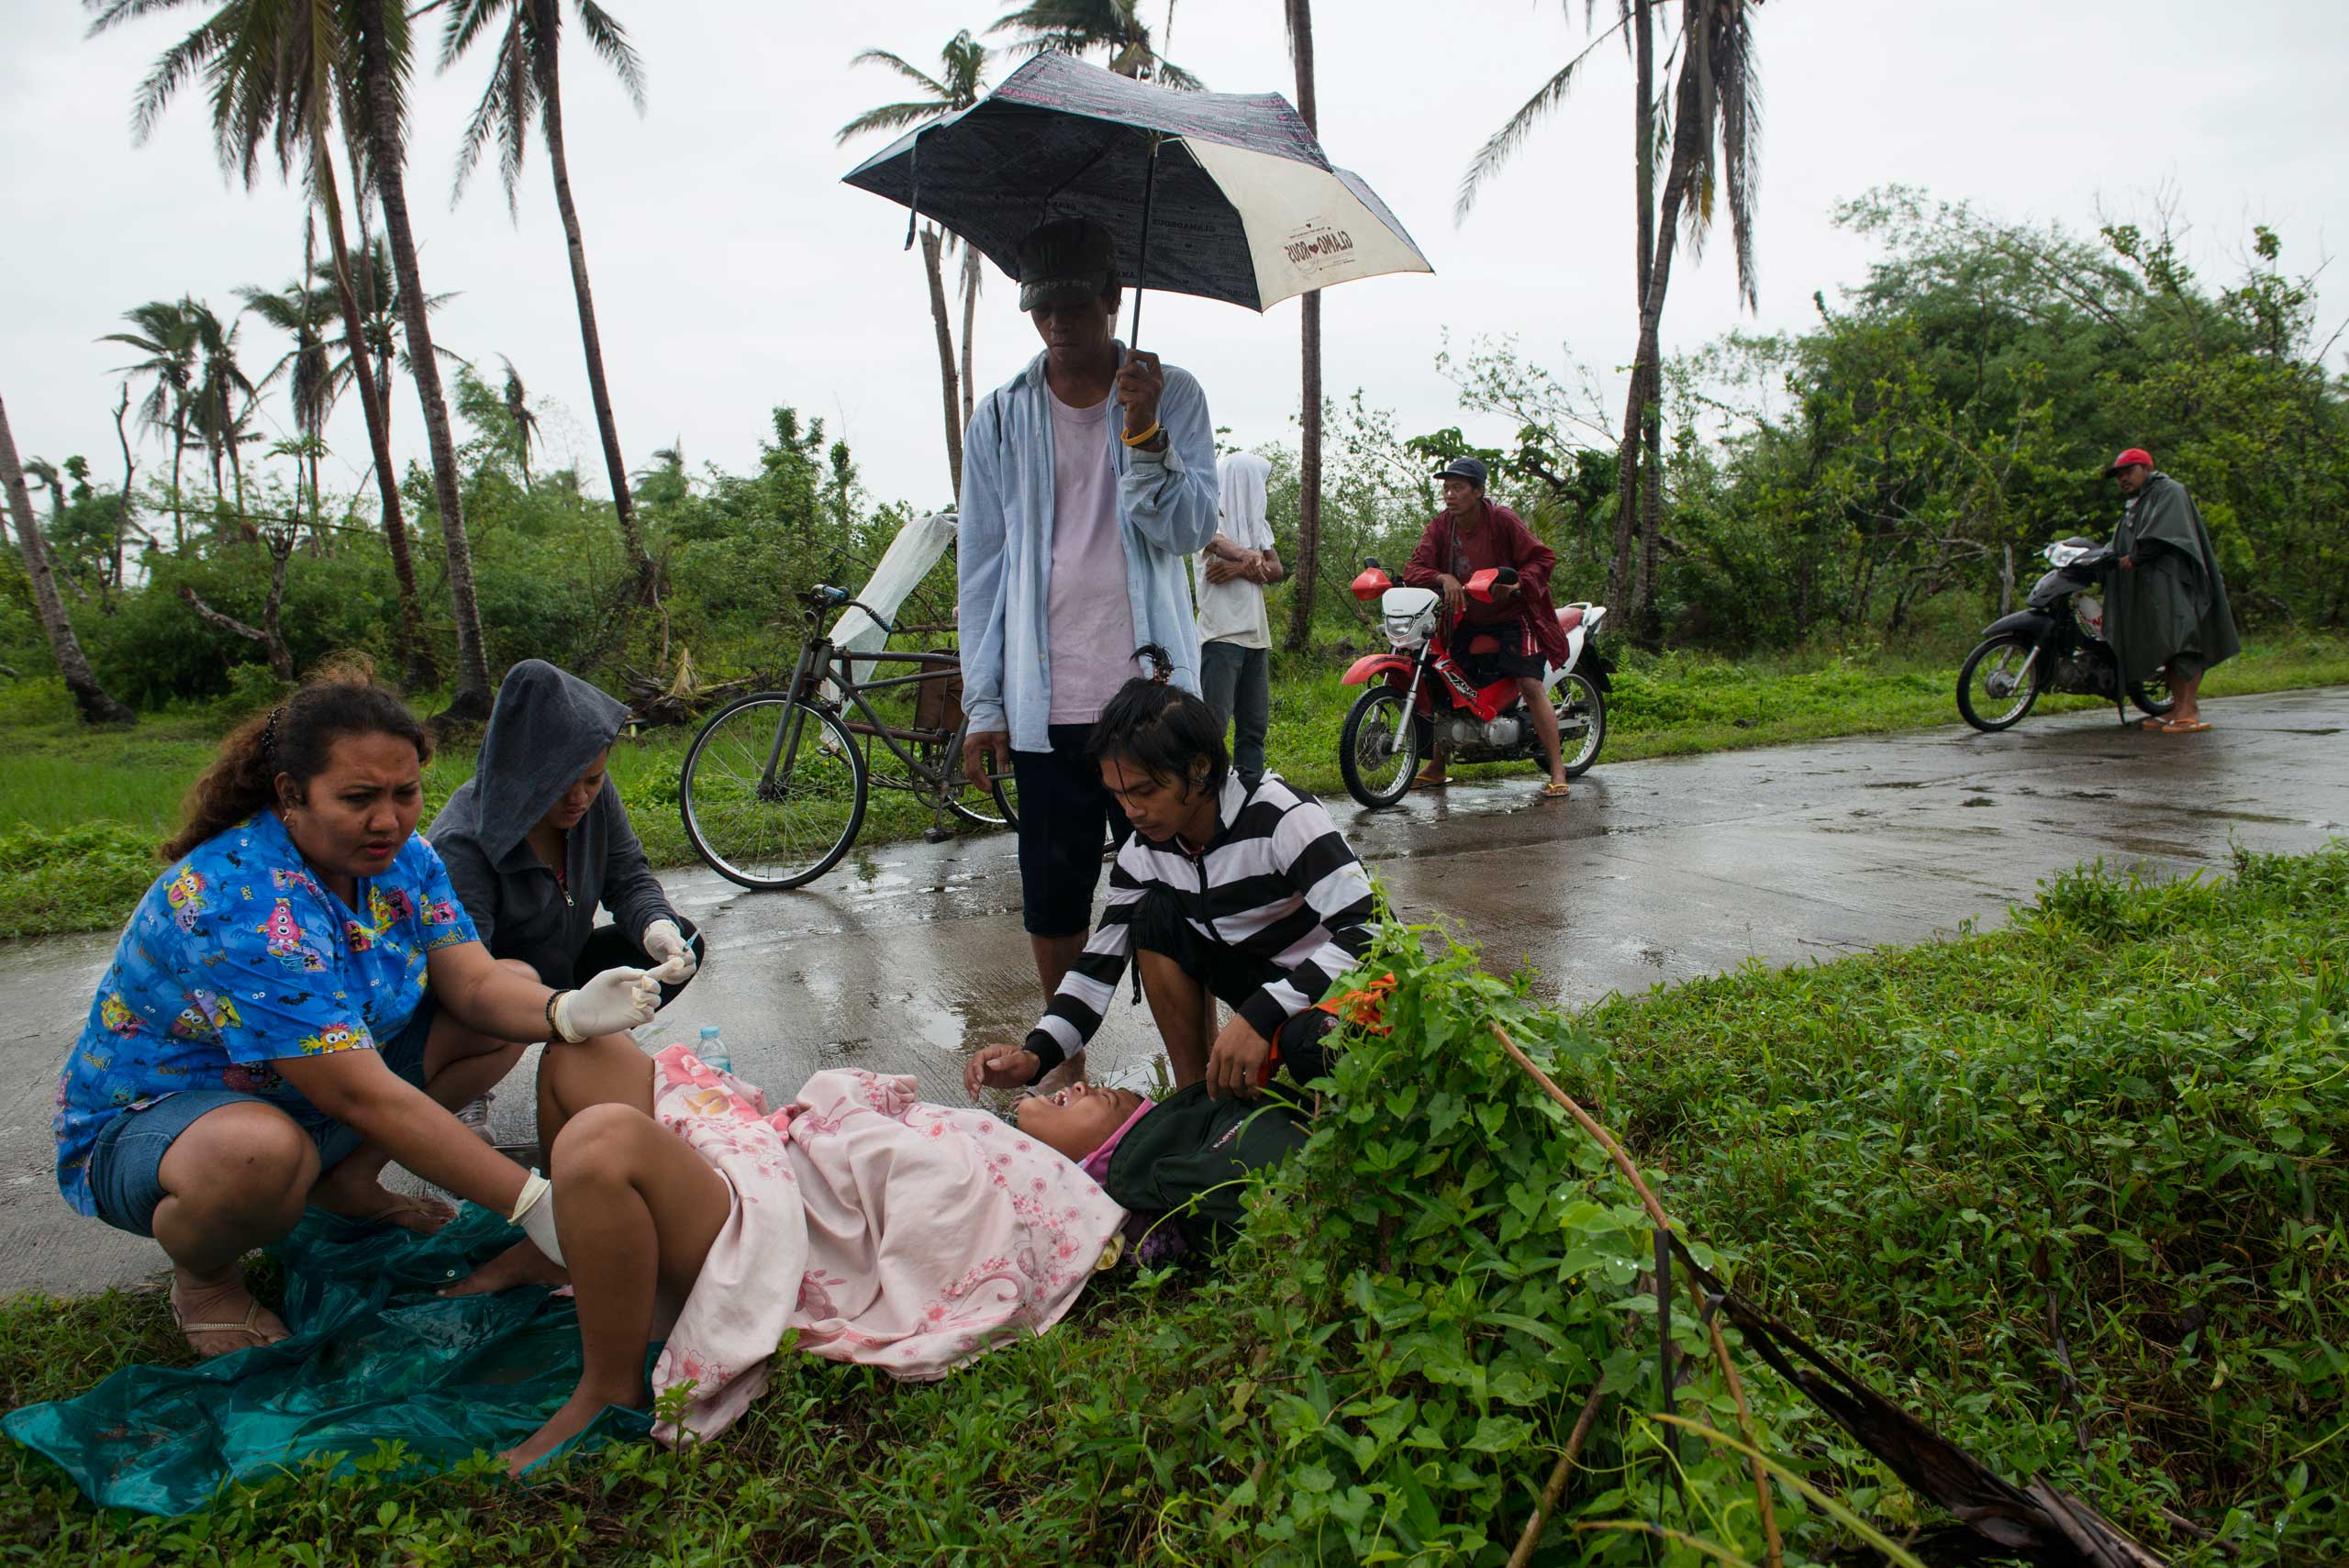 Midwife Norena Malate delivers the baby of Analyn Pesado, 18, as Analyn's husband, Ryan Bacate, 21, looks on on the side of the road in Tolosa, outside of Tacloban, in the Philippines, Jan. 11, 2014.